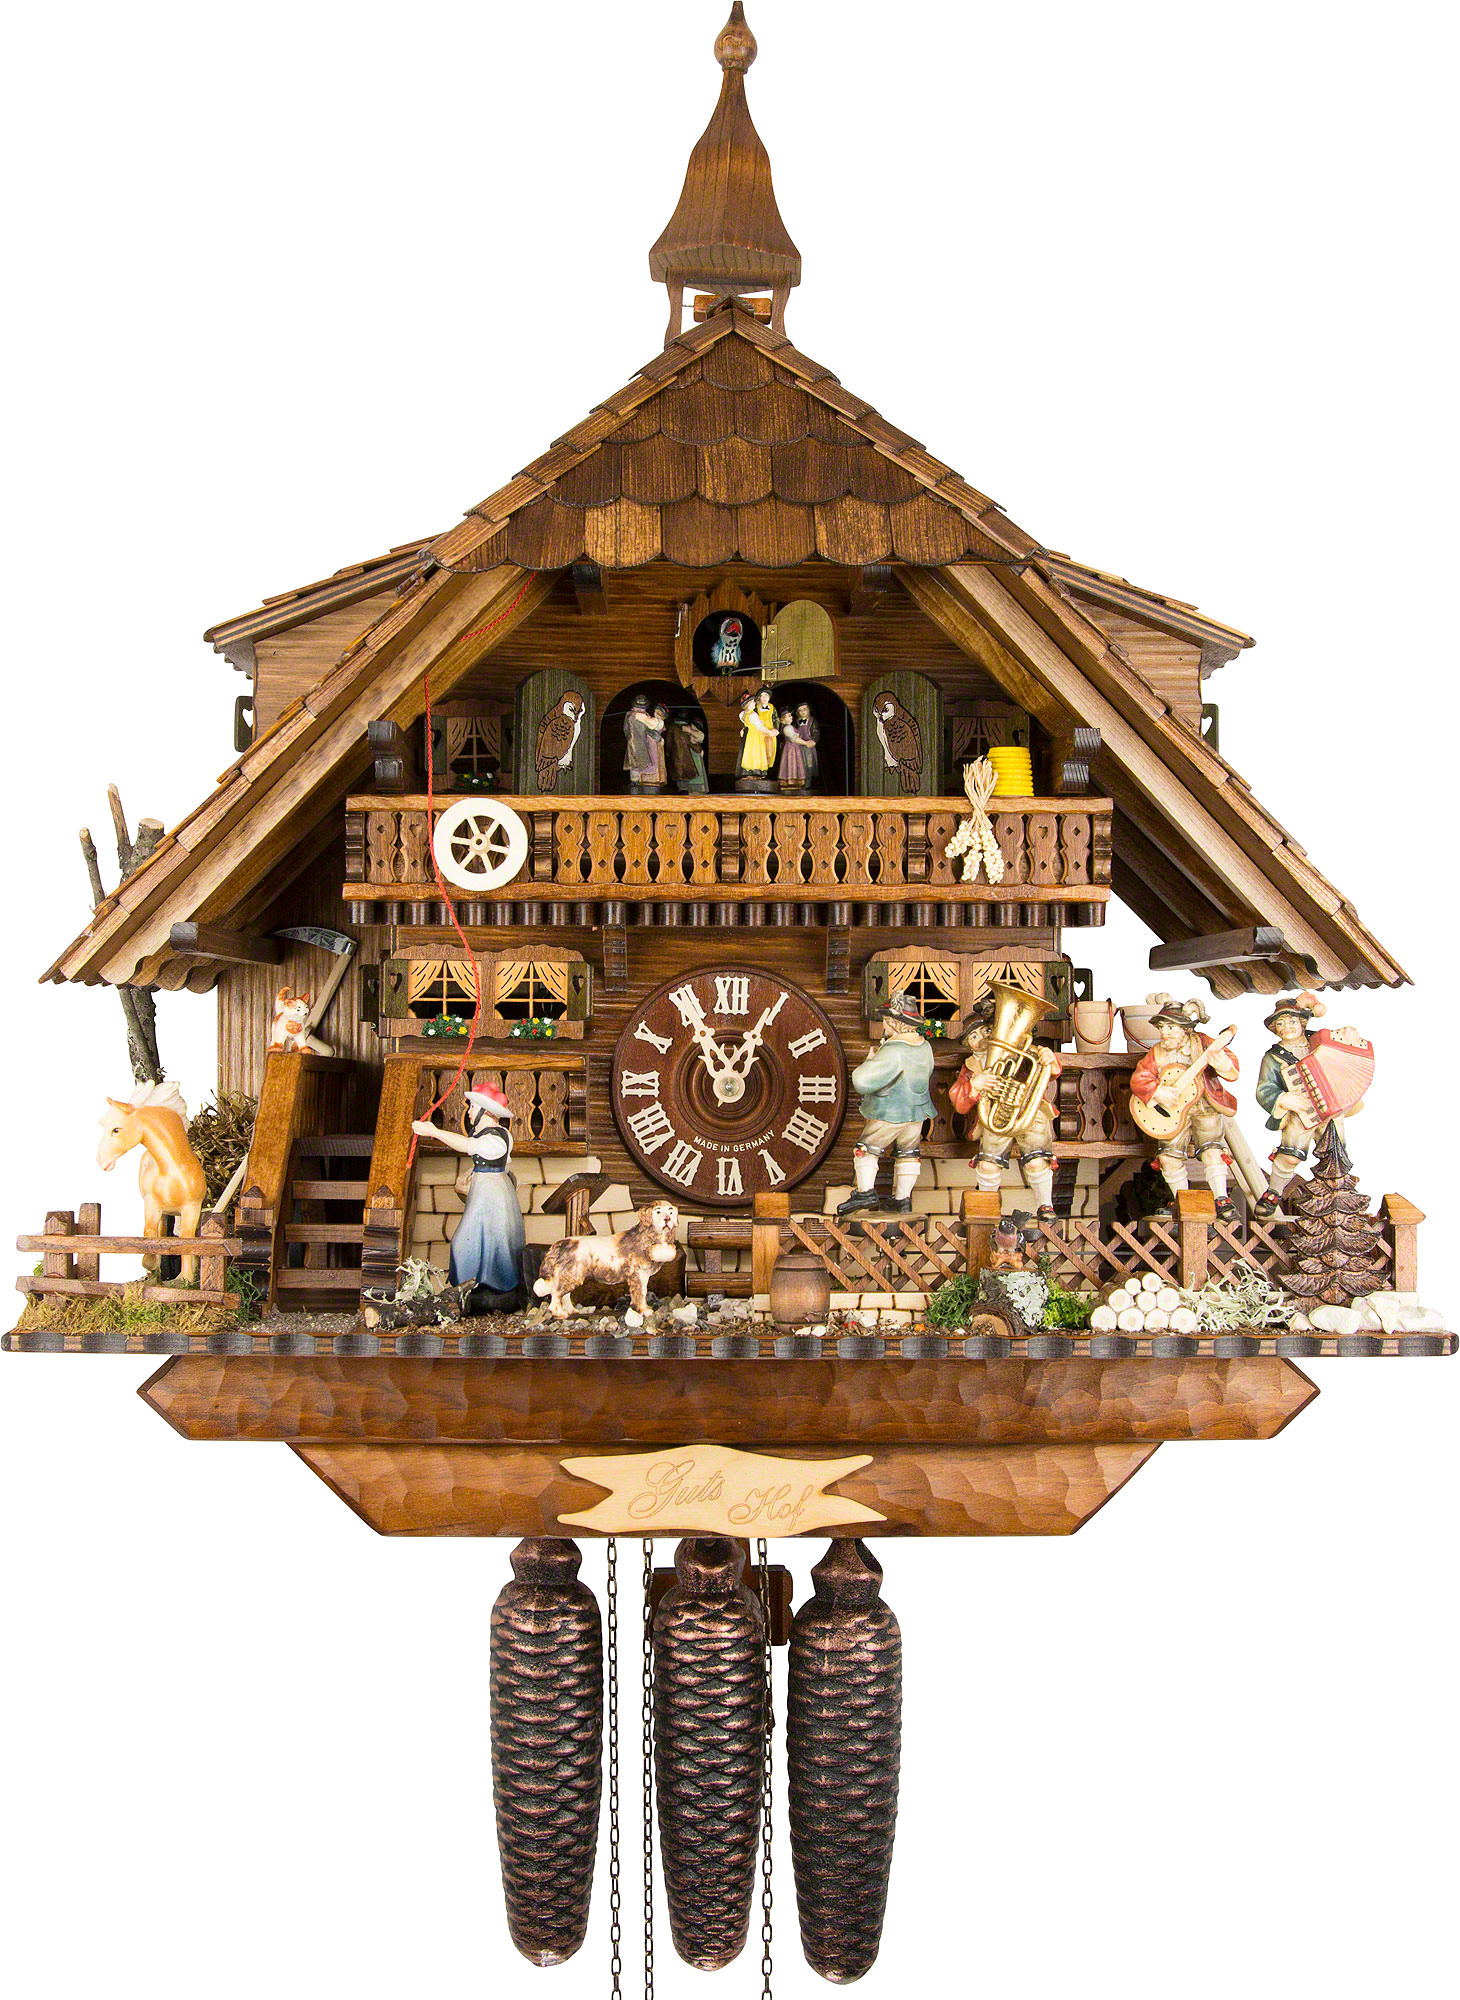 Chalet Cuckoo Clocks Cuckoo Clock 8-day-movement Chalet-Style 47cm by August - Cuckoo Clock PNG HD